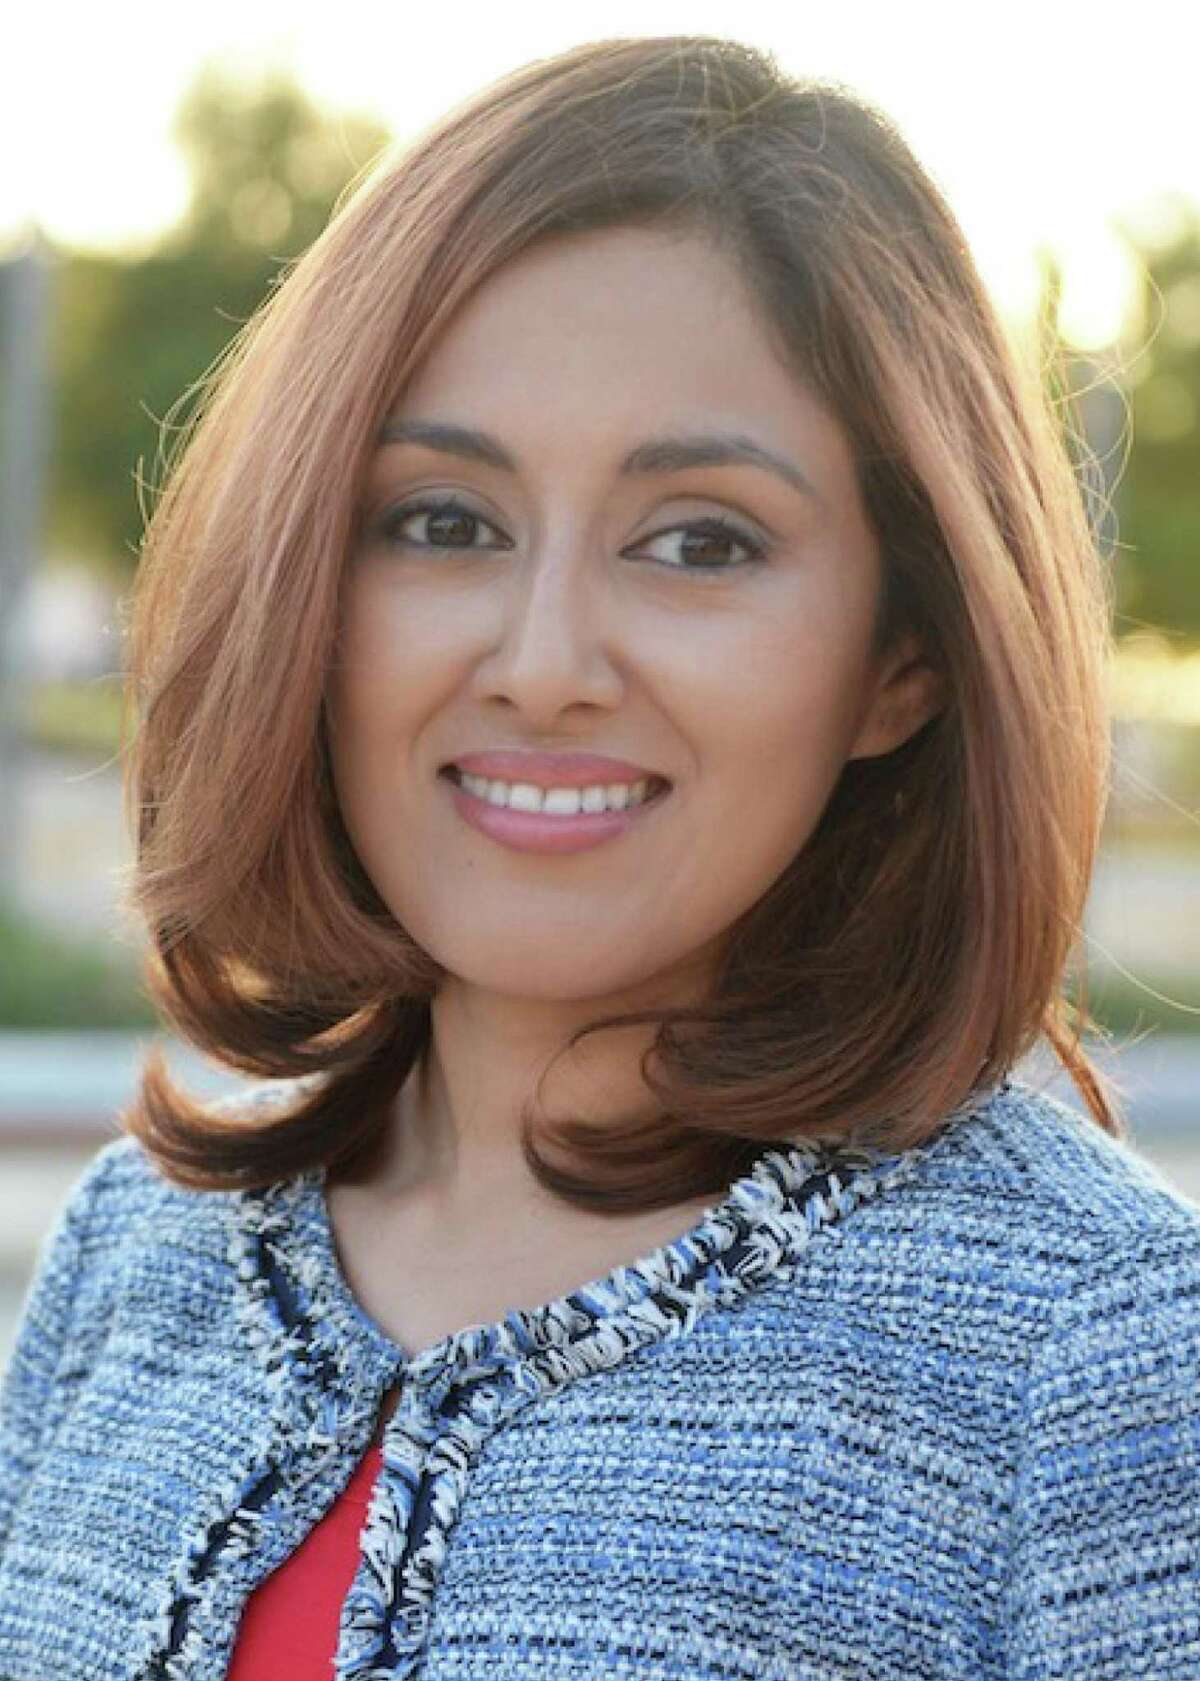 Irma Iris Duran de Rodriguez ran for the District 5 seat on the Northside ISD board.